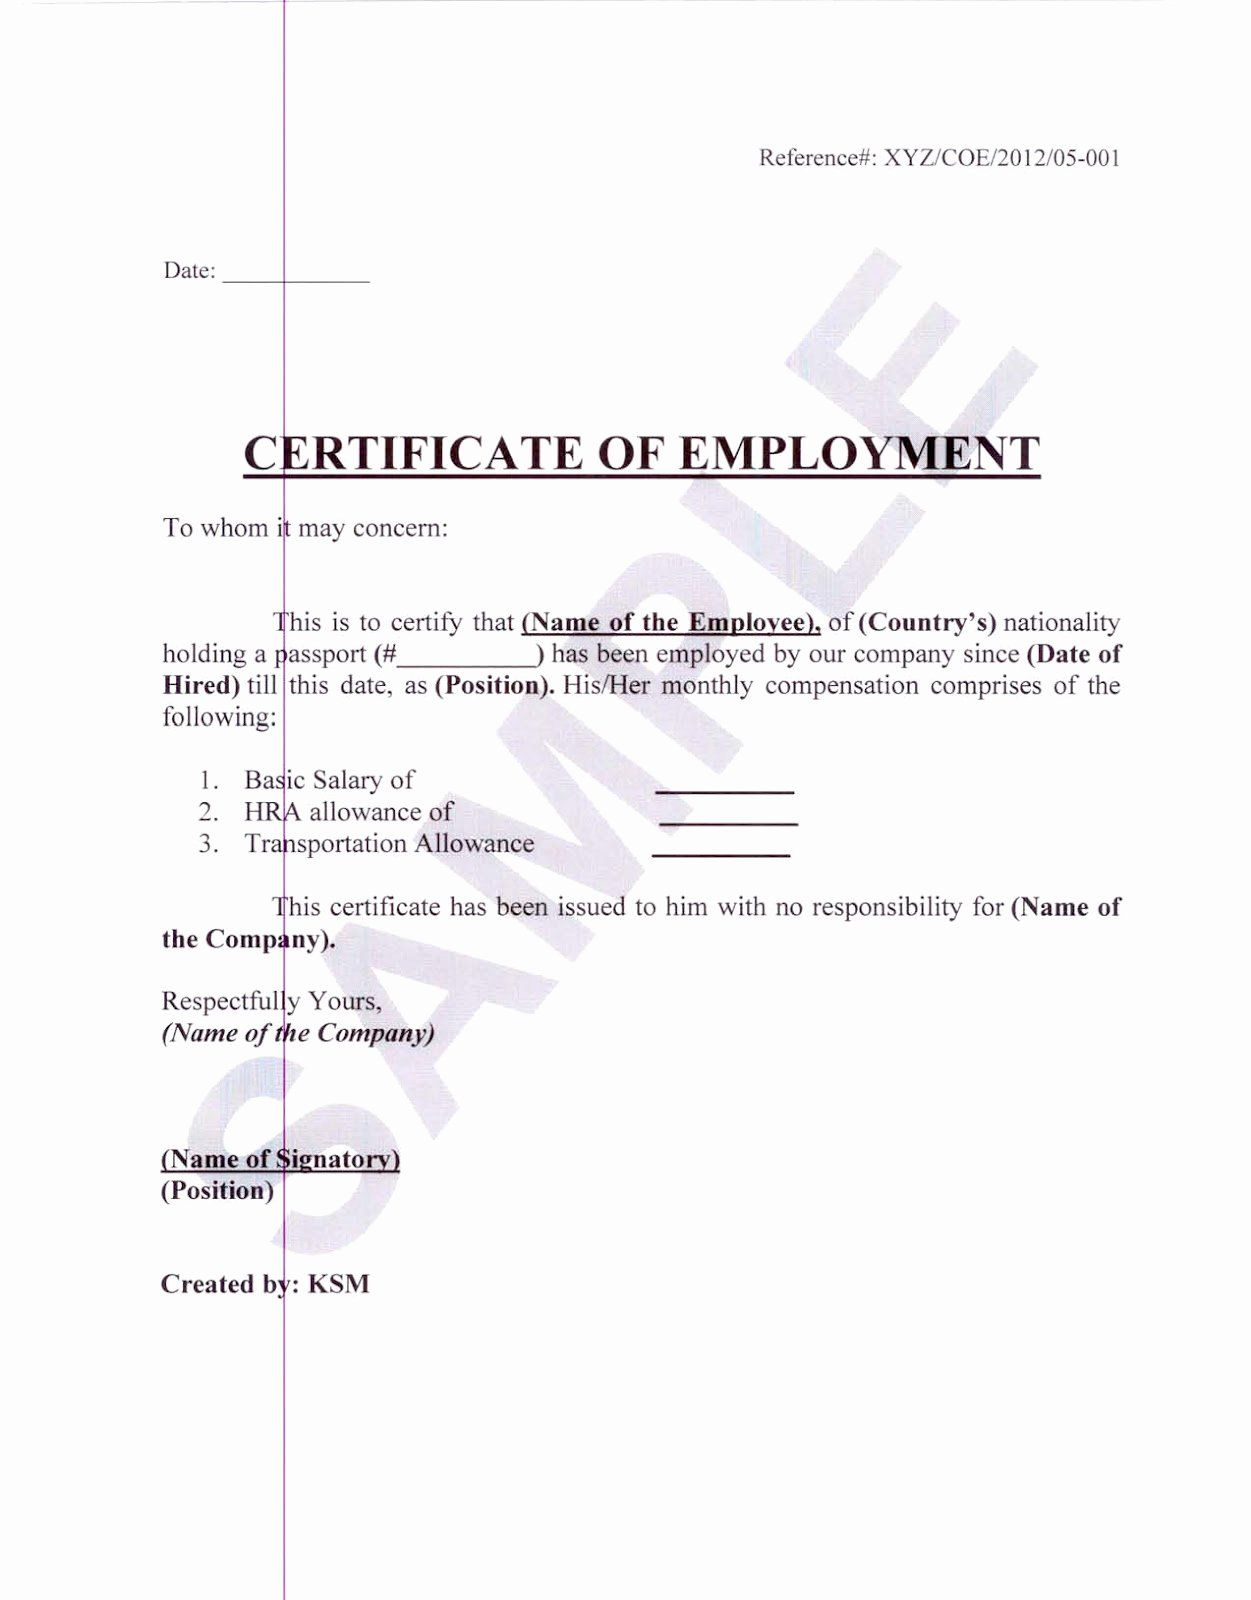 Sample Of Certificate Of Employment Best Of Money Business People Travel And Pleasure Certifica Certificate Design Template Word Template Design Award Template